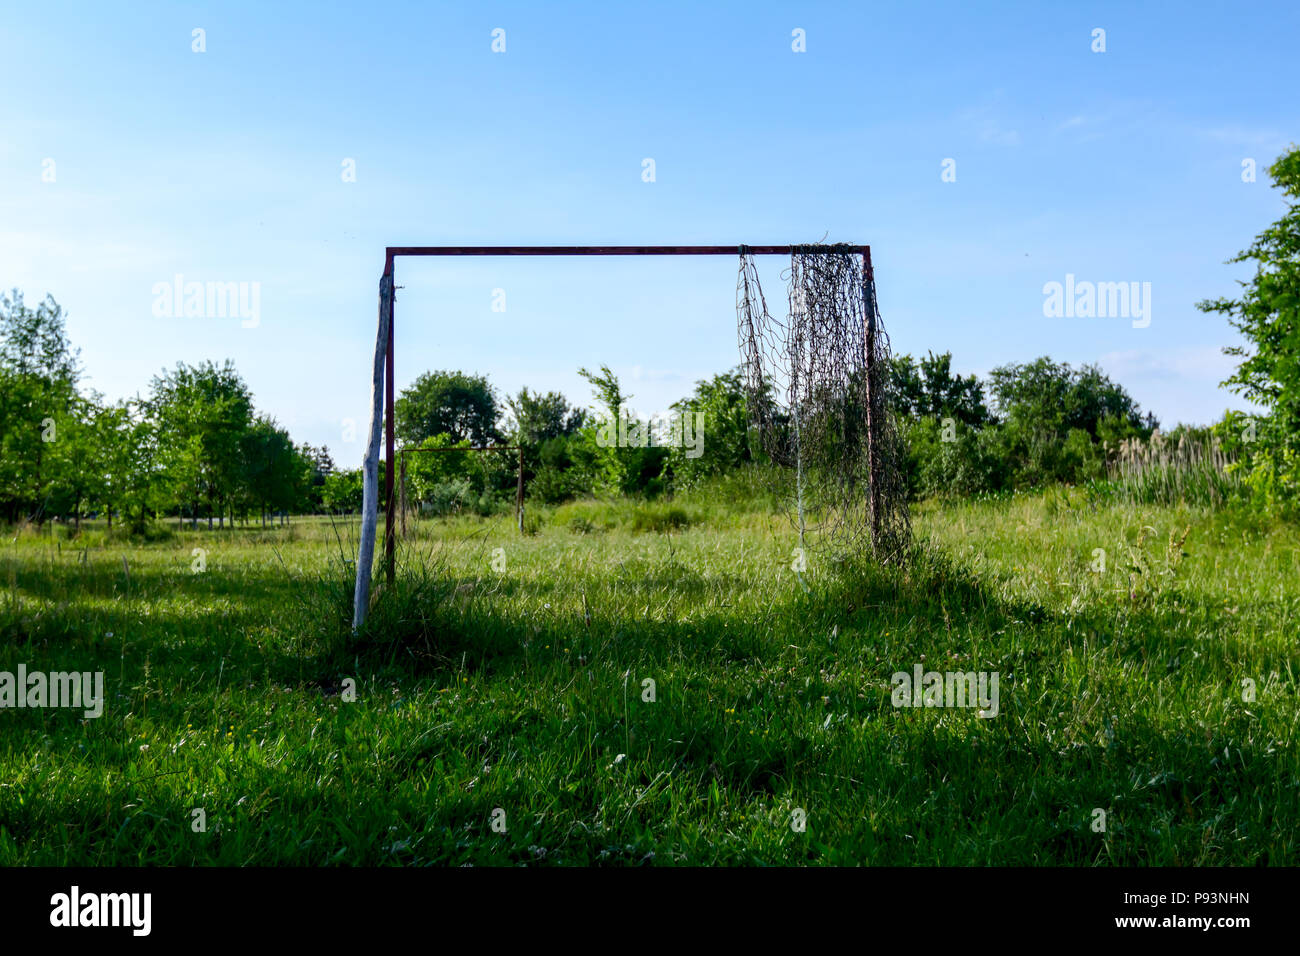 Lonely goal in neglected and overgrown soccer court among grass vegetation. - Stock Image